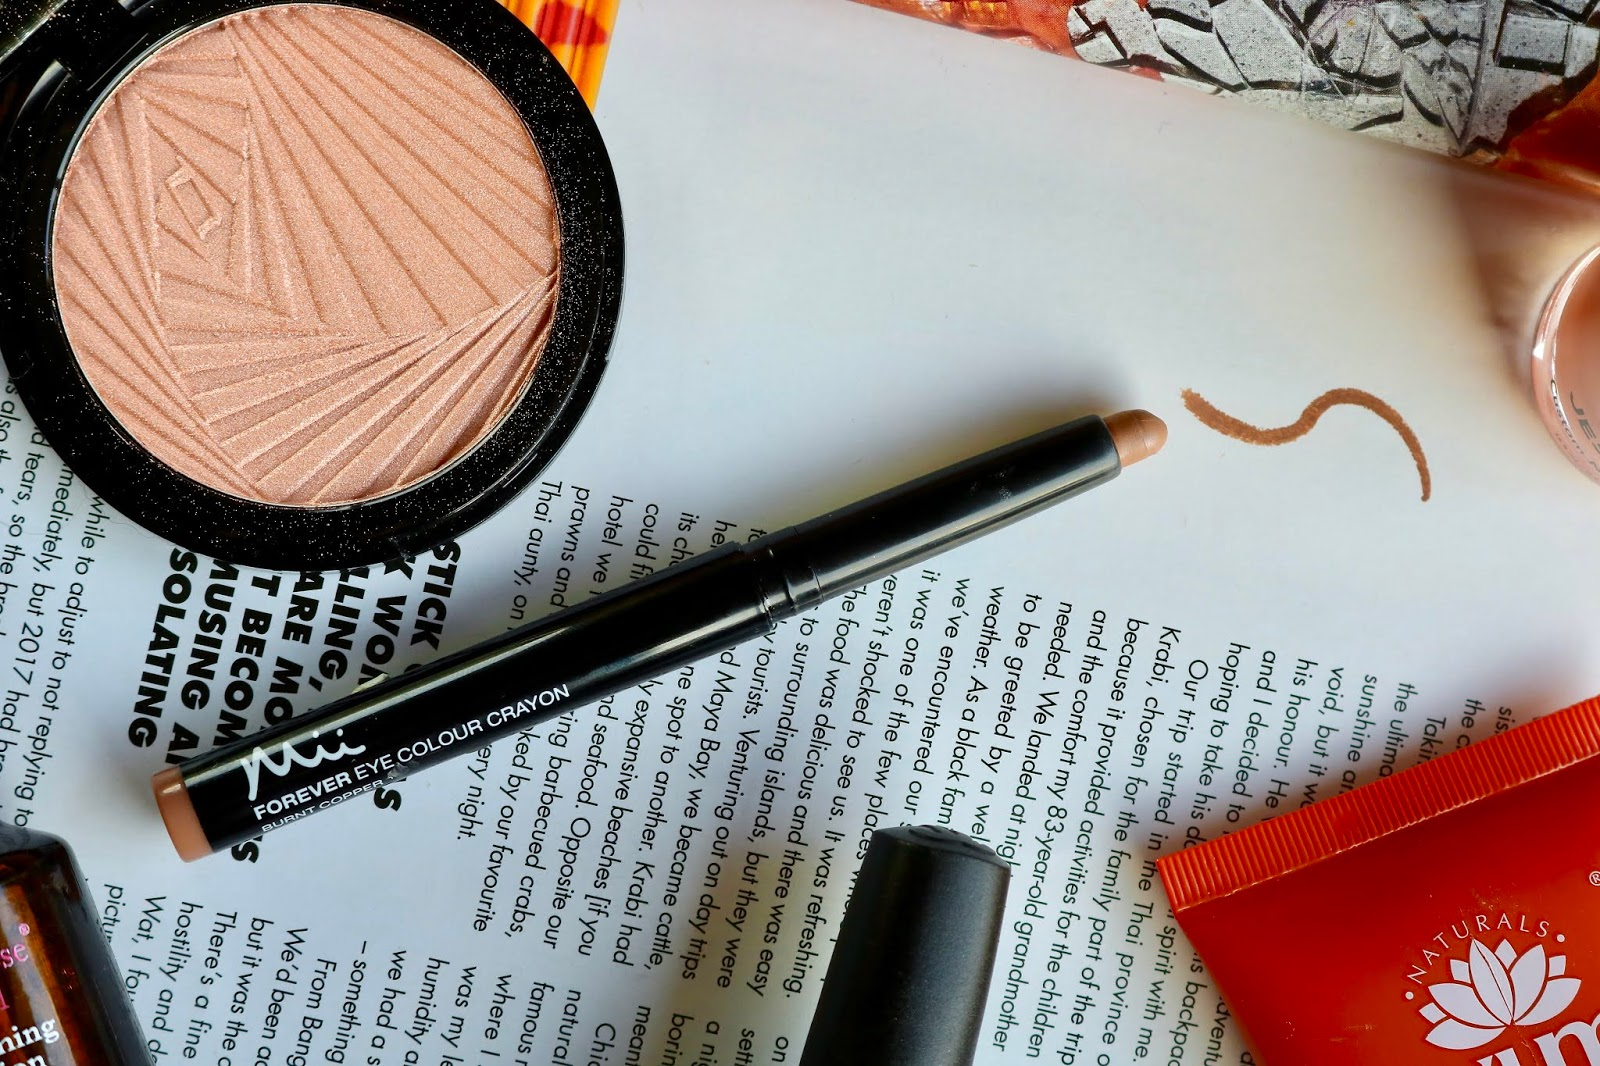 Mii Cosmetics Forever Eye Colour Crayon in Burnt Copper